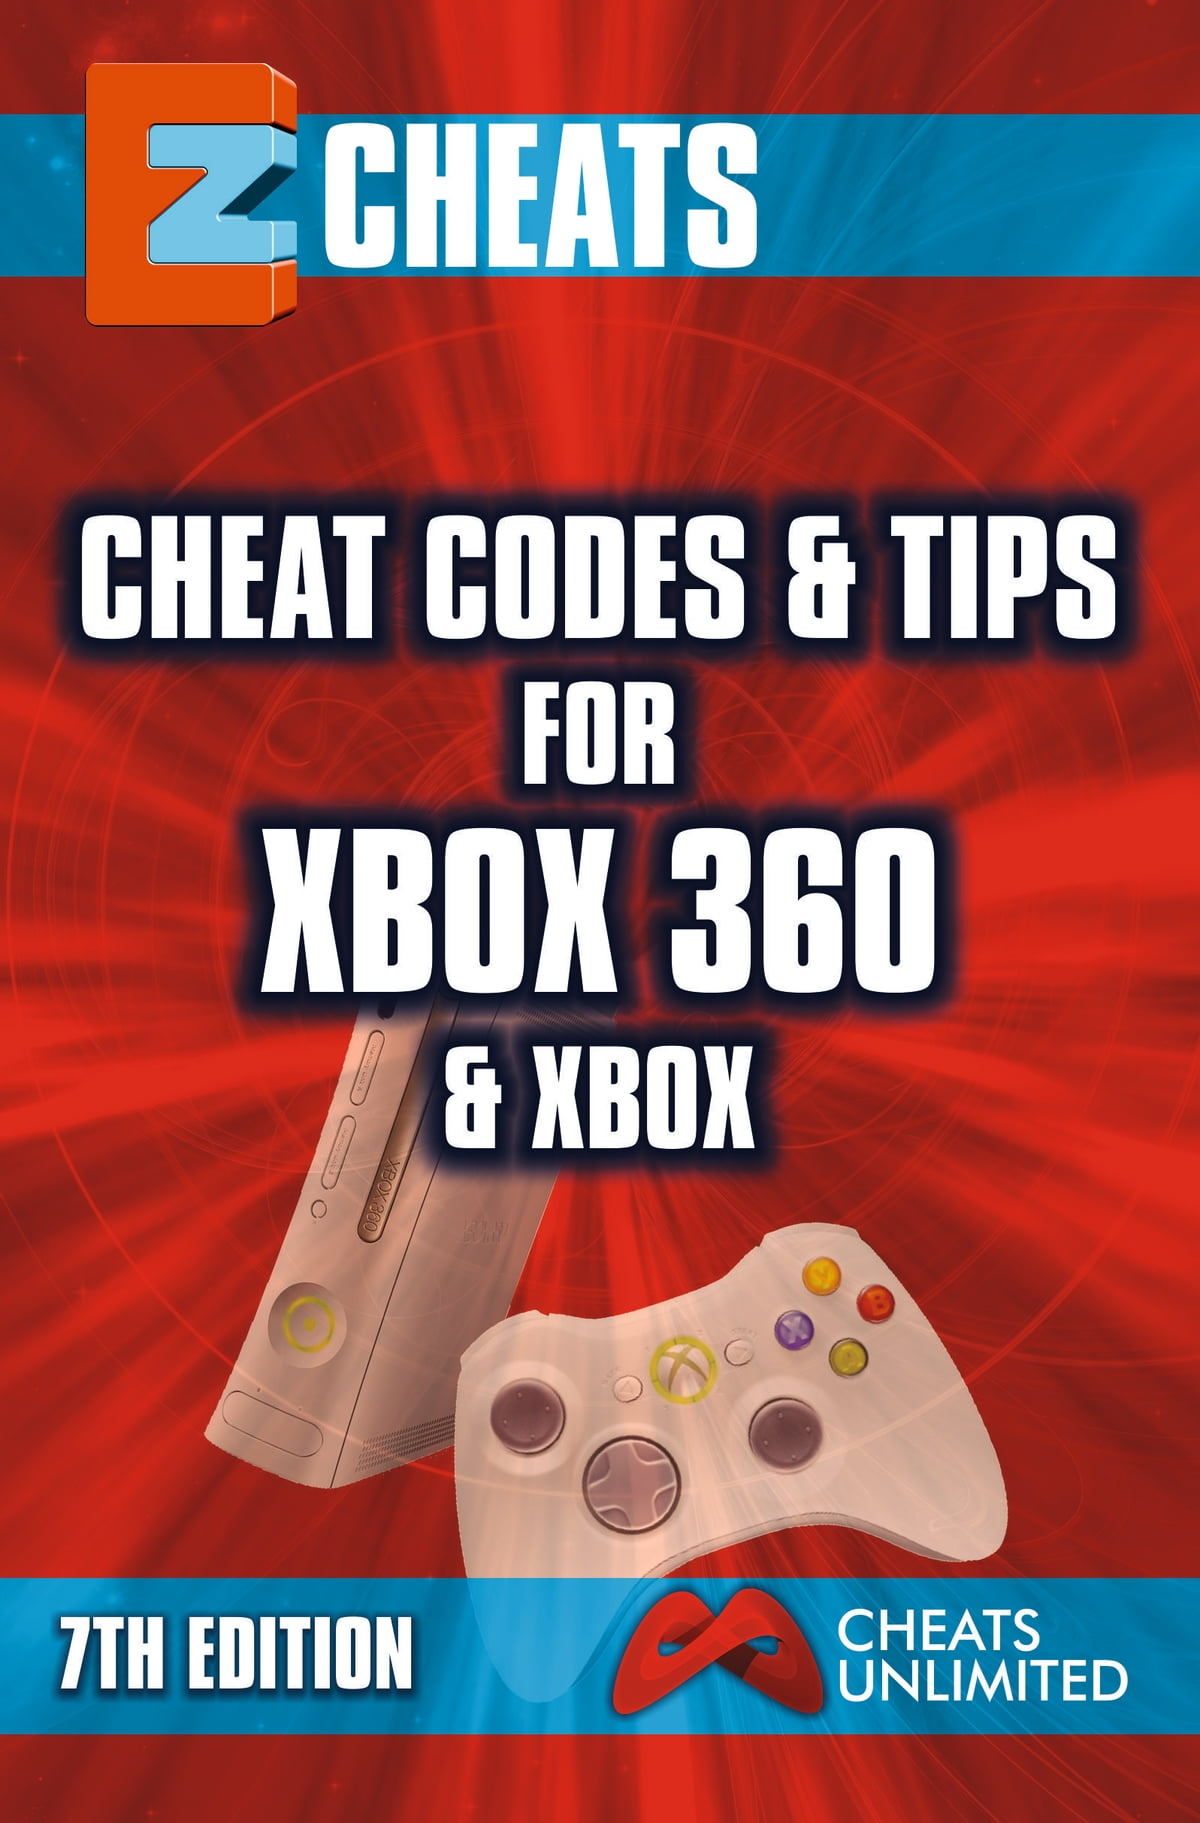 Ez Cheats Cheat Codes And Tips For Xbox 360 And Xbox 7th Edition